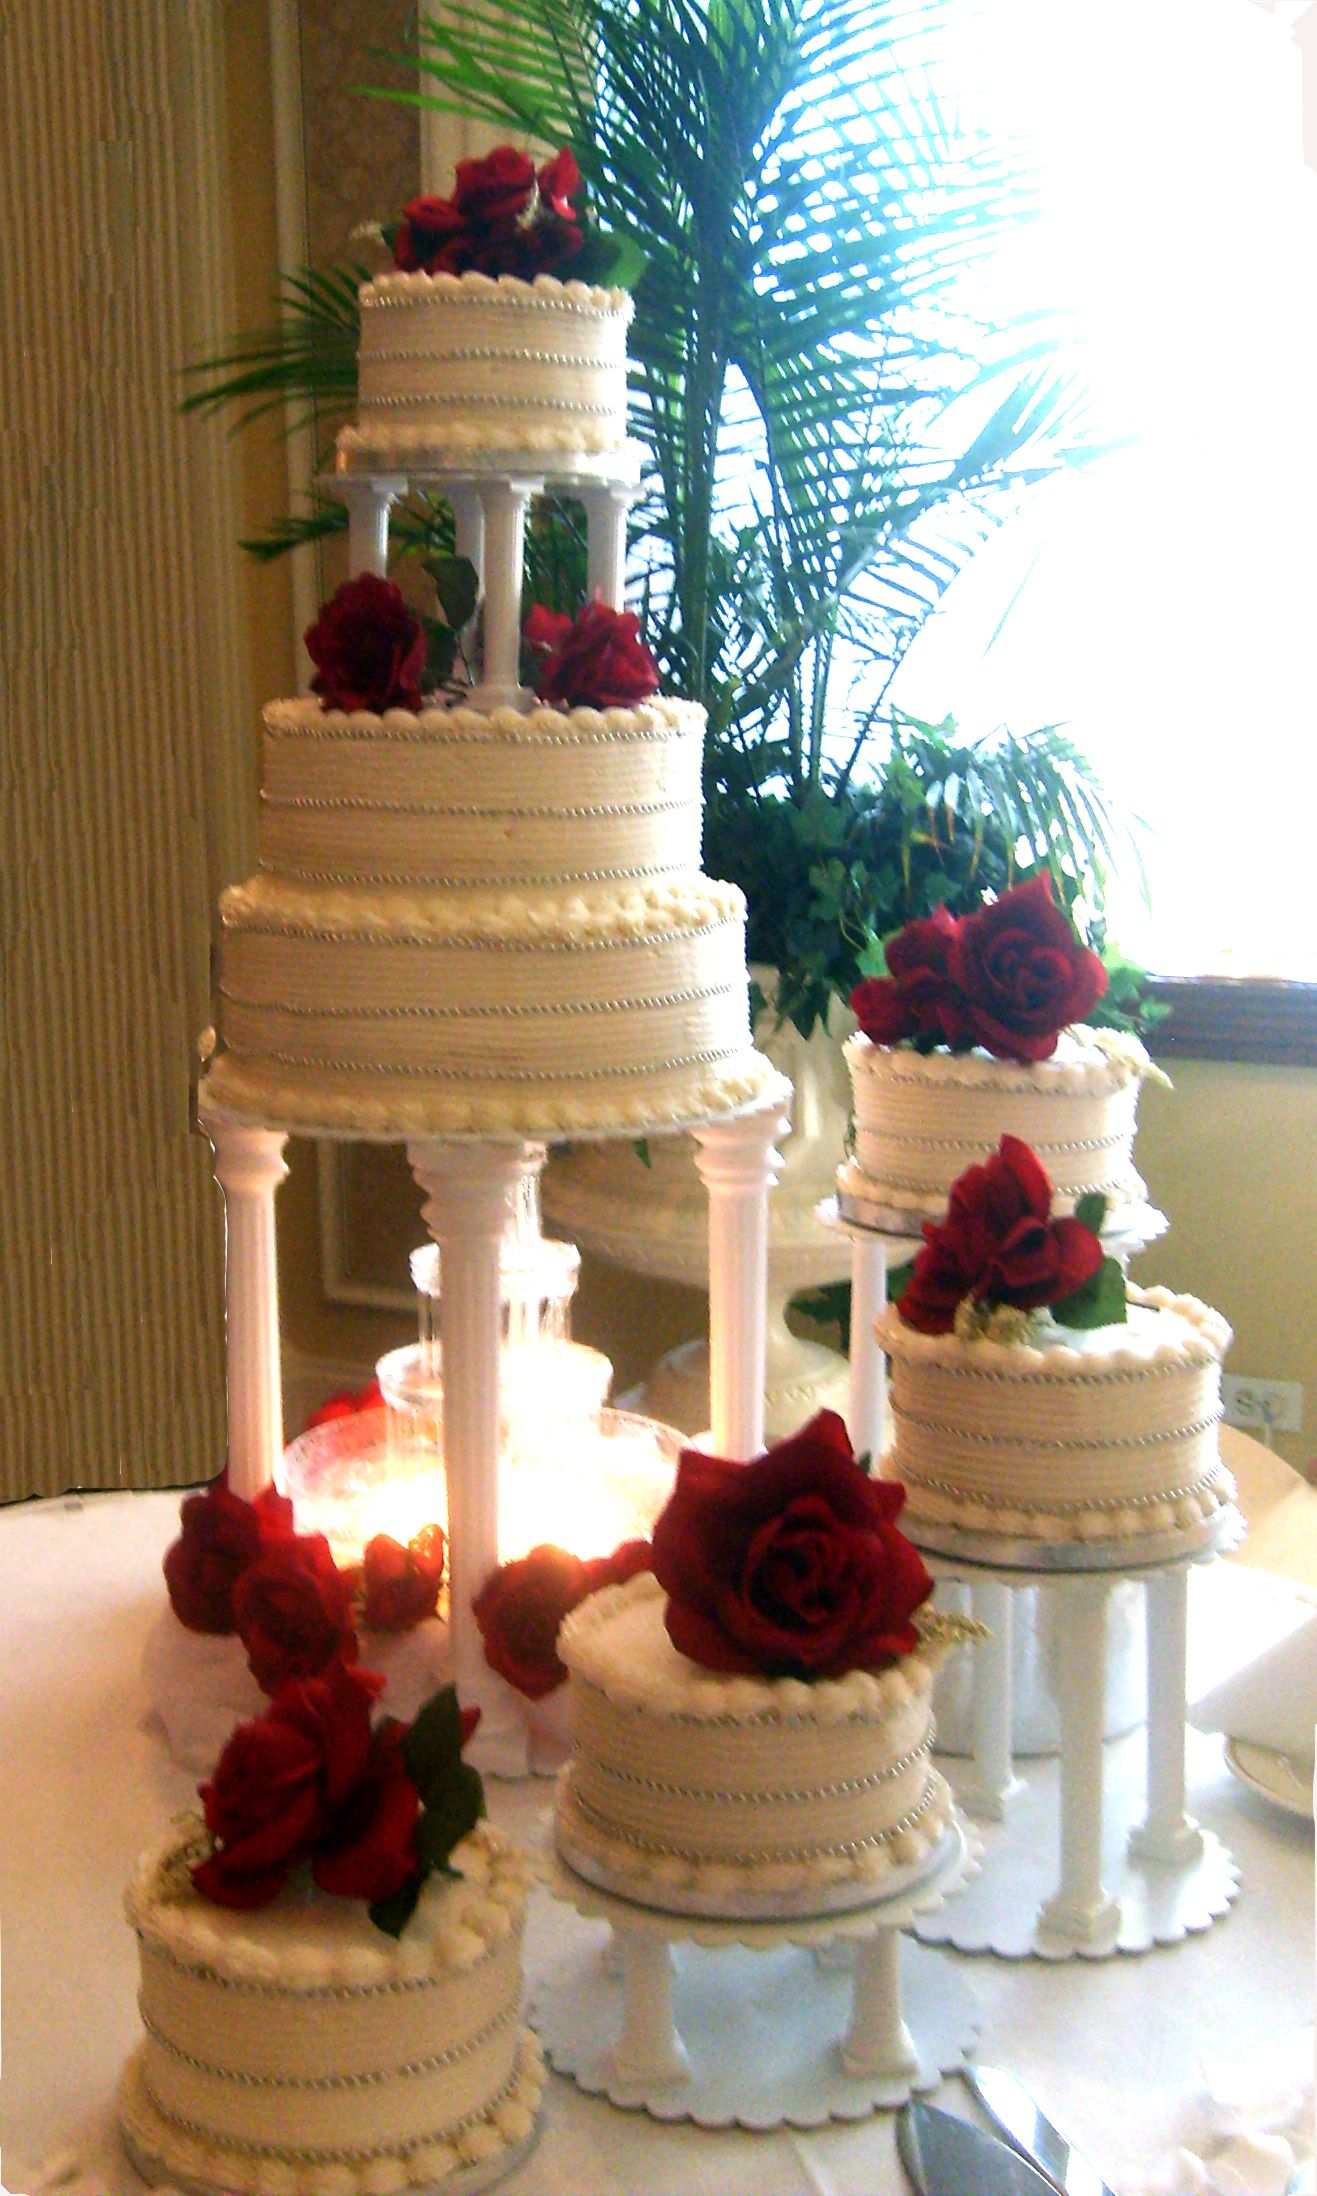 rose wedding cake ideas stairs wedding cake design wedding cakes 19314